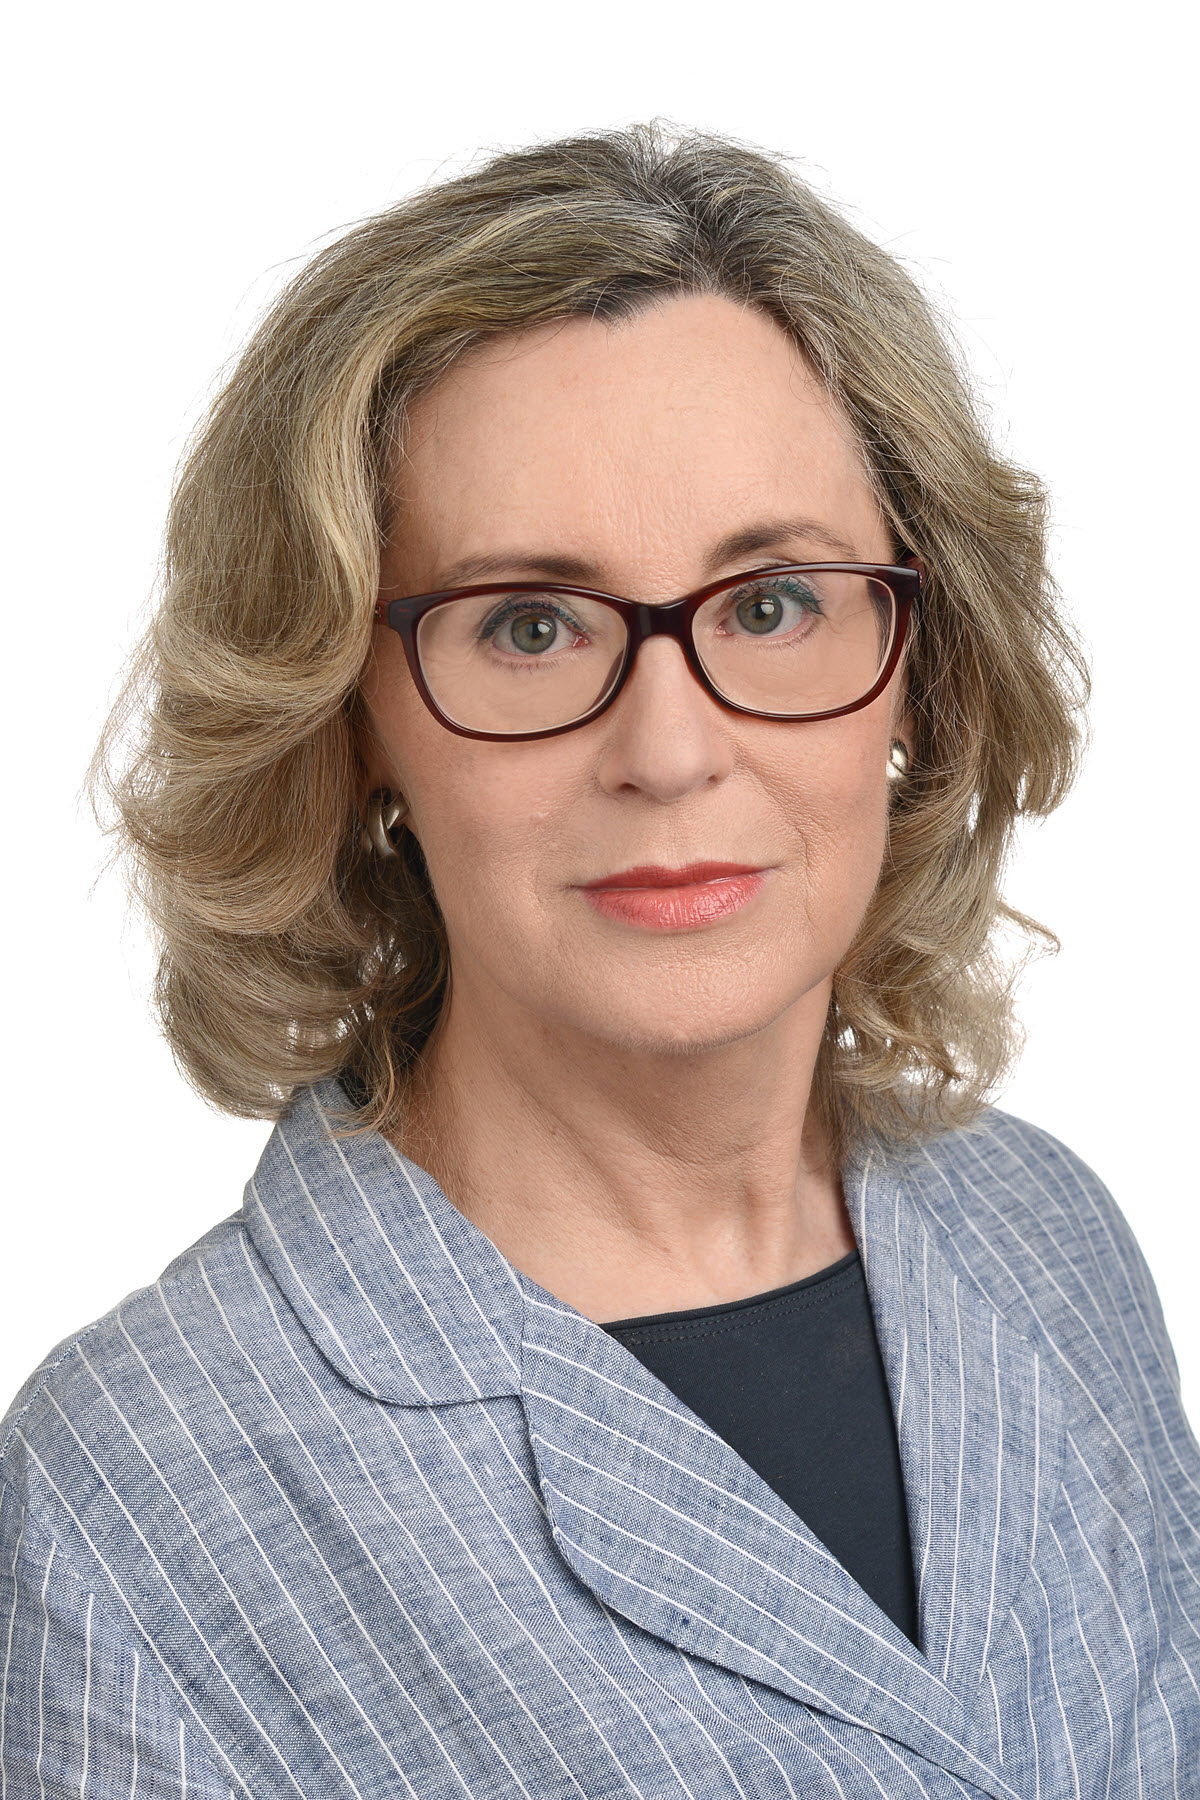 Kim Titcomber - Gender & Development Economist